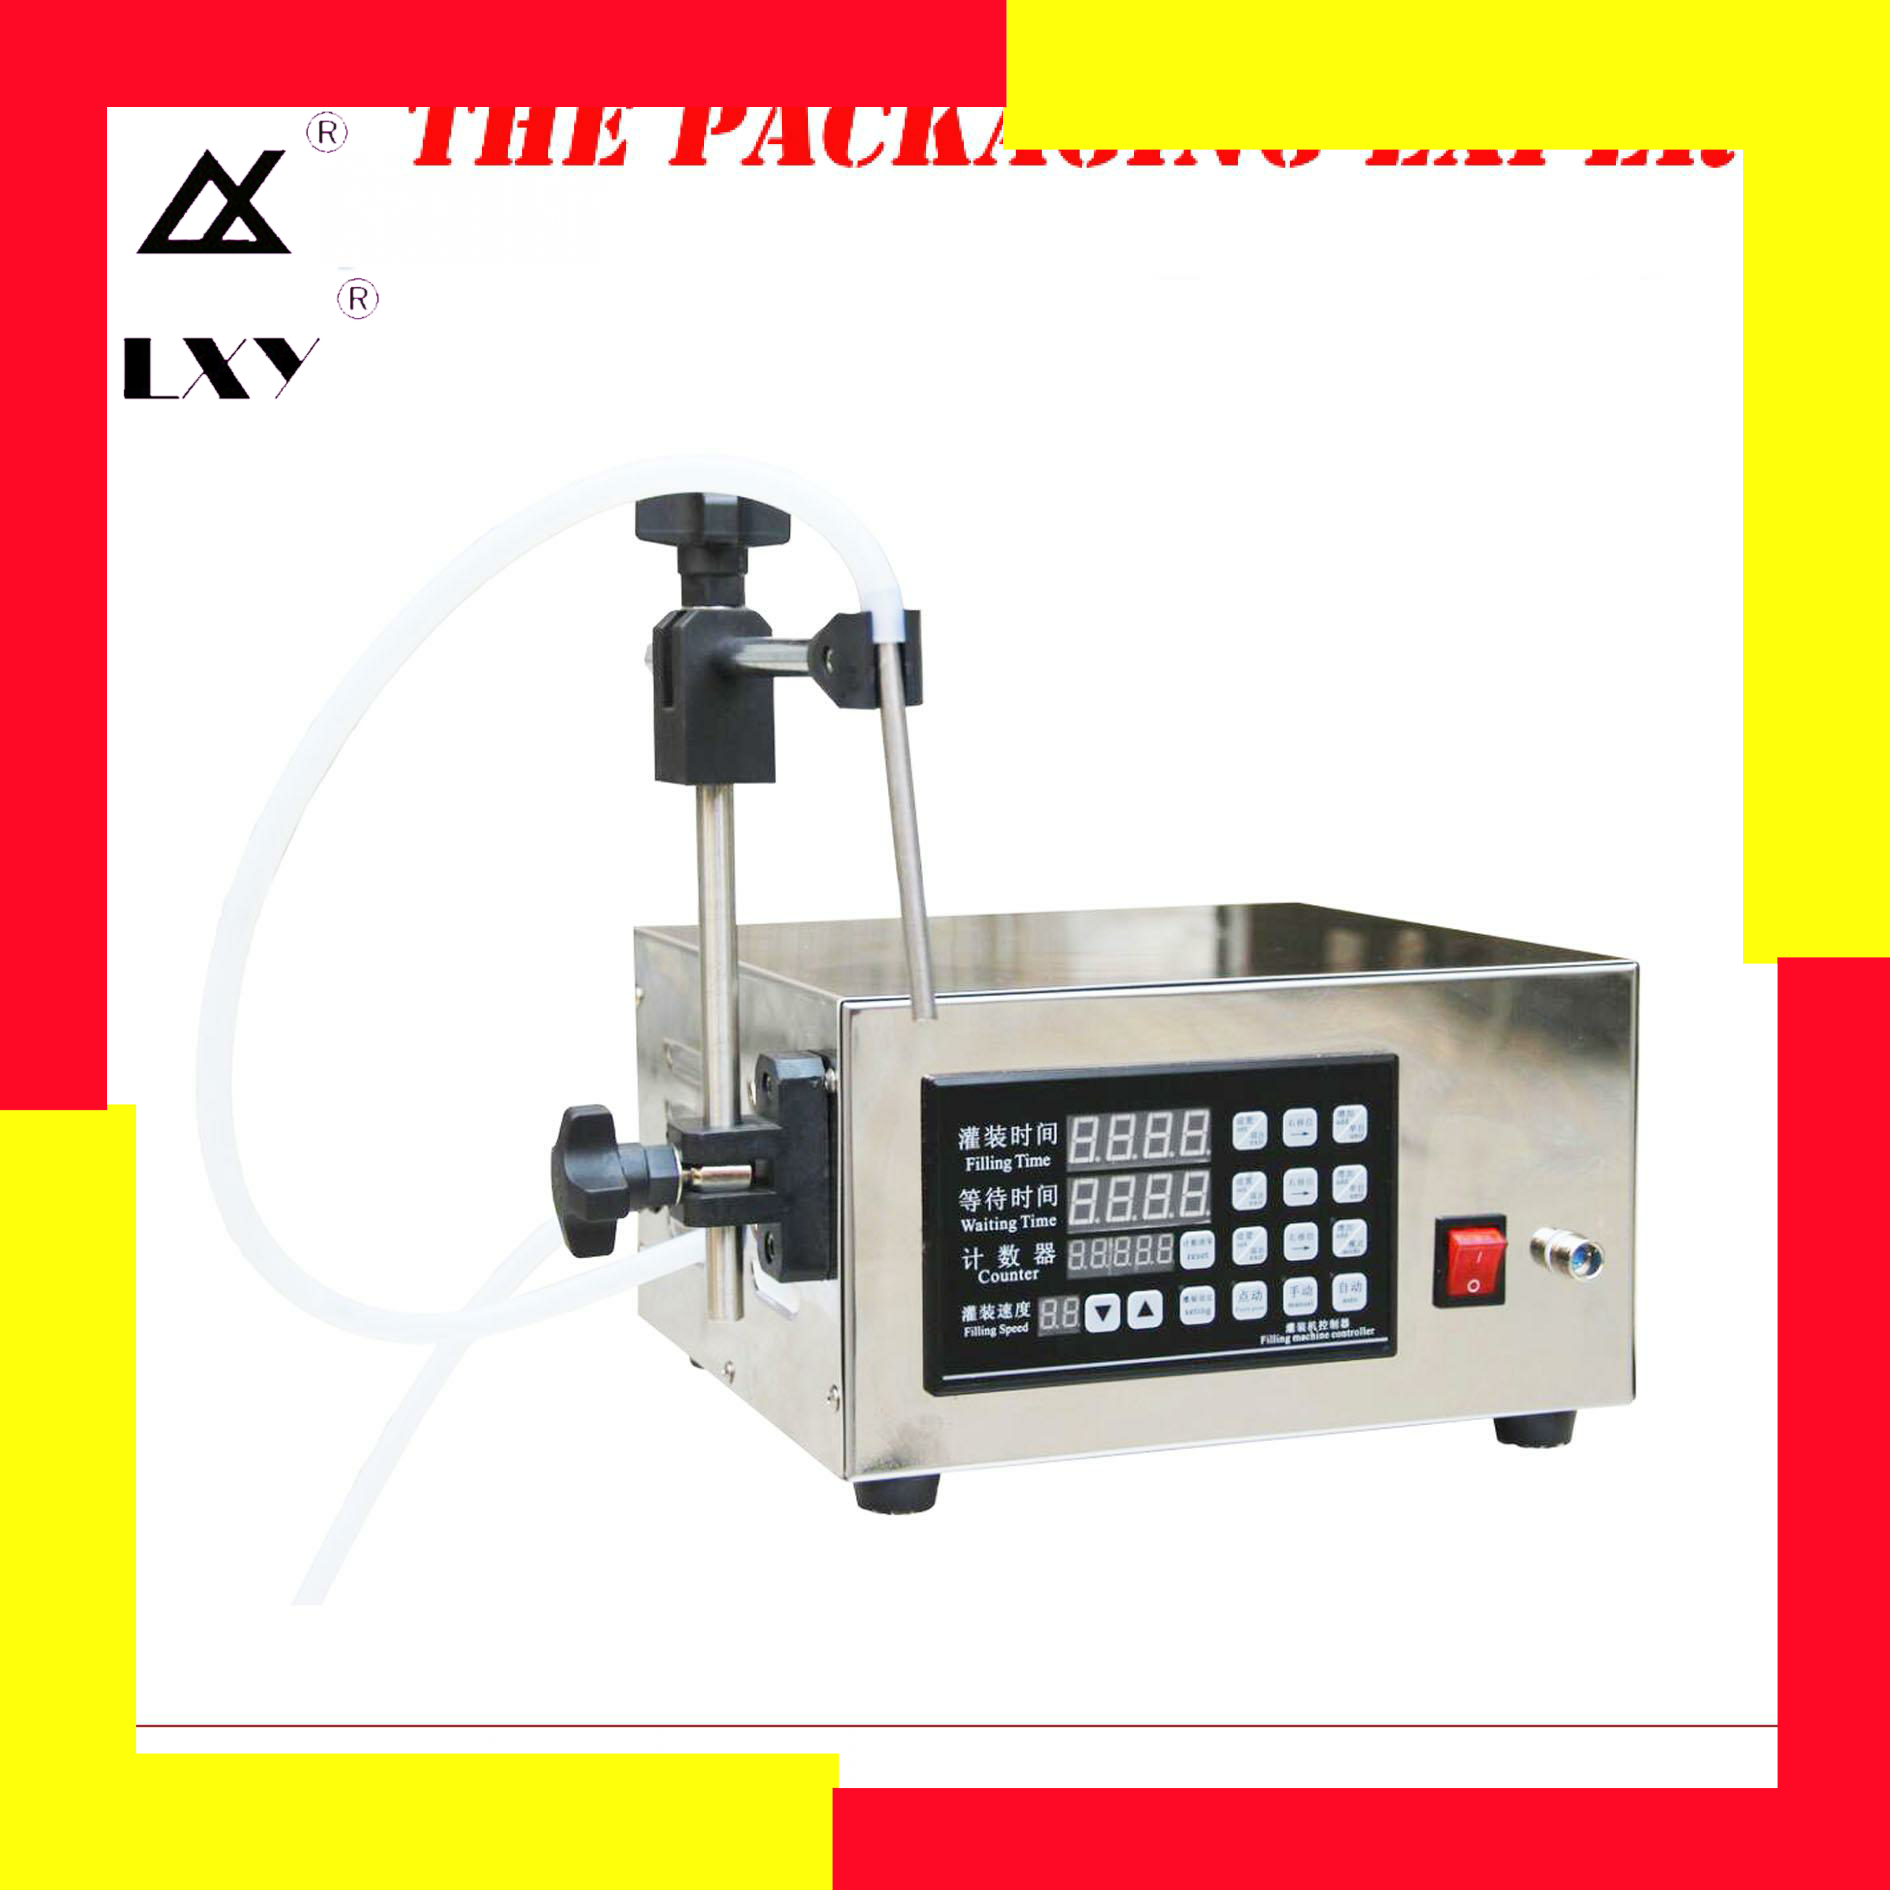 Electrical Liquid Filling Machine Water Digital Filler Automatic Beverage Oil Wine Drinking Liquor Kerosene Fill Equipment Tools